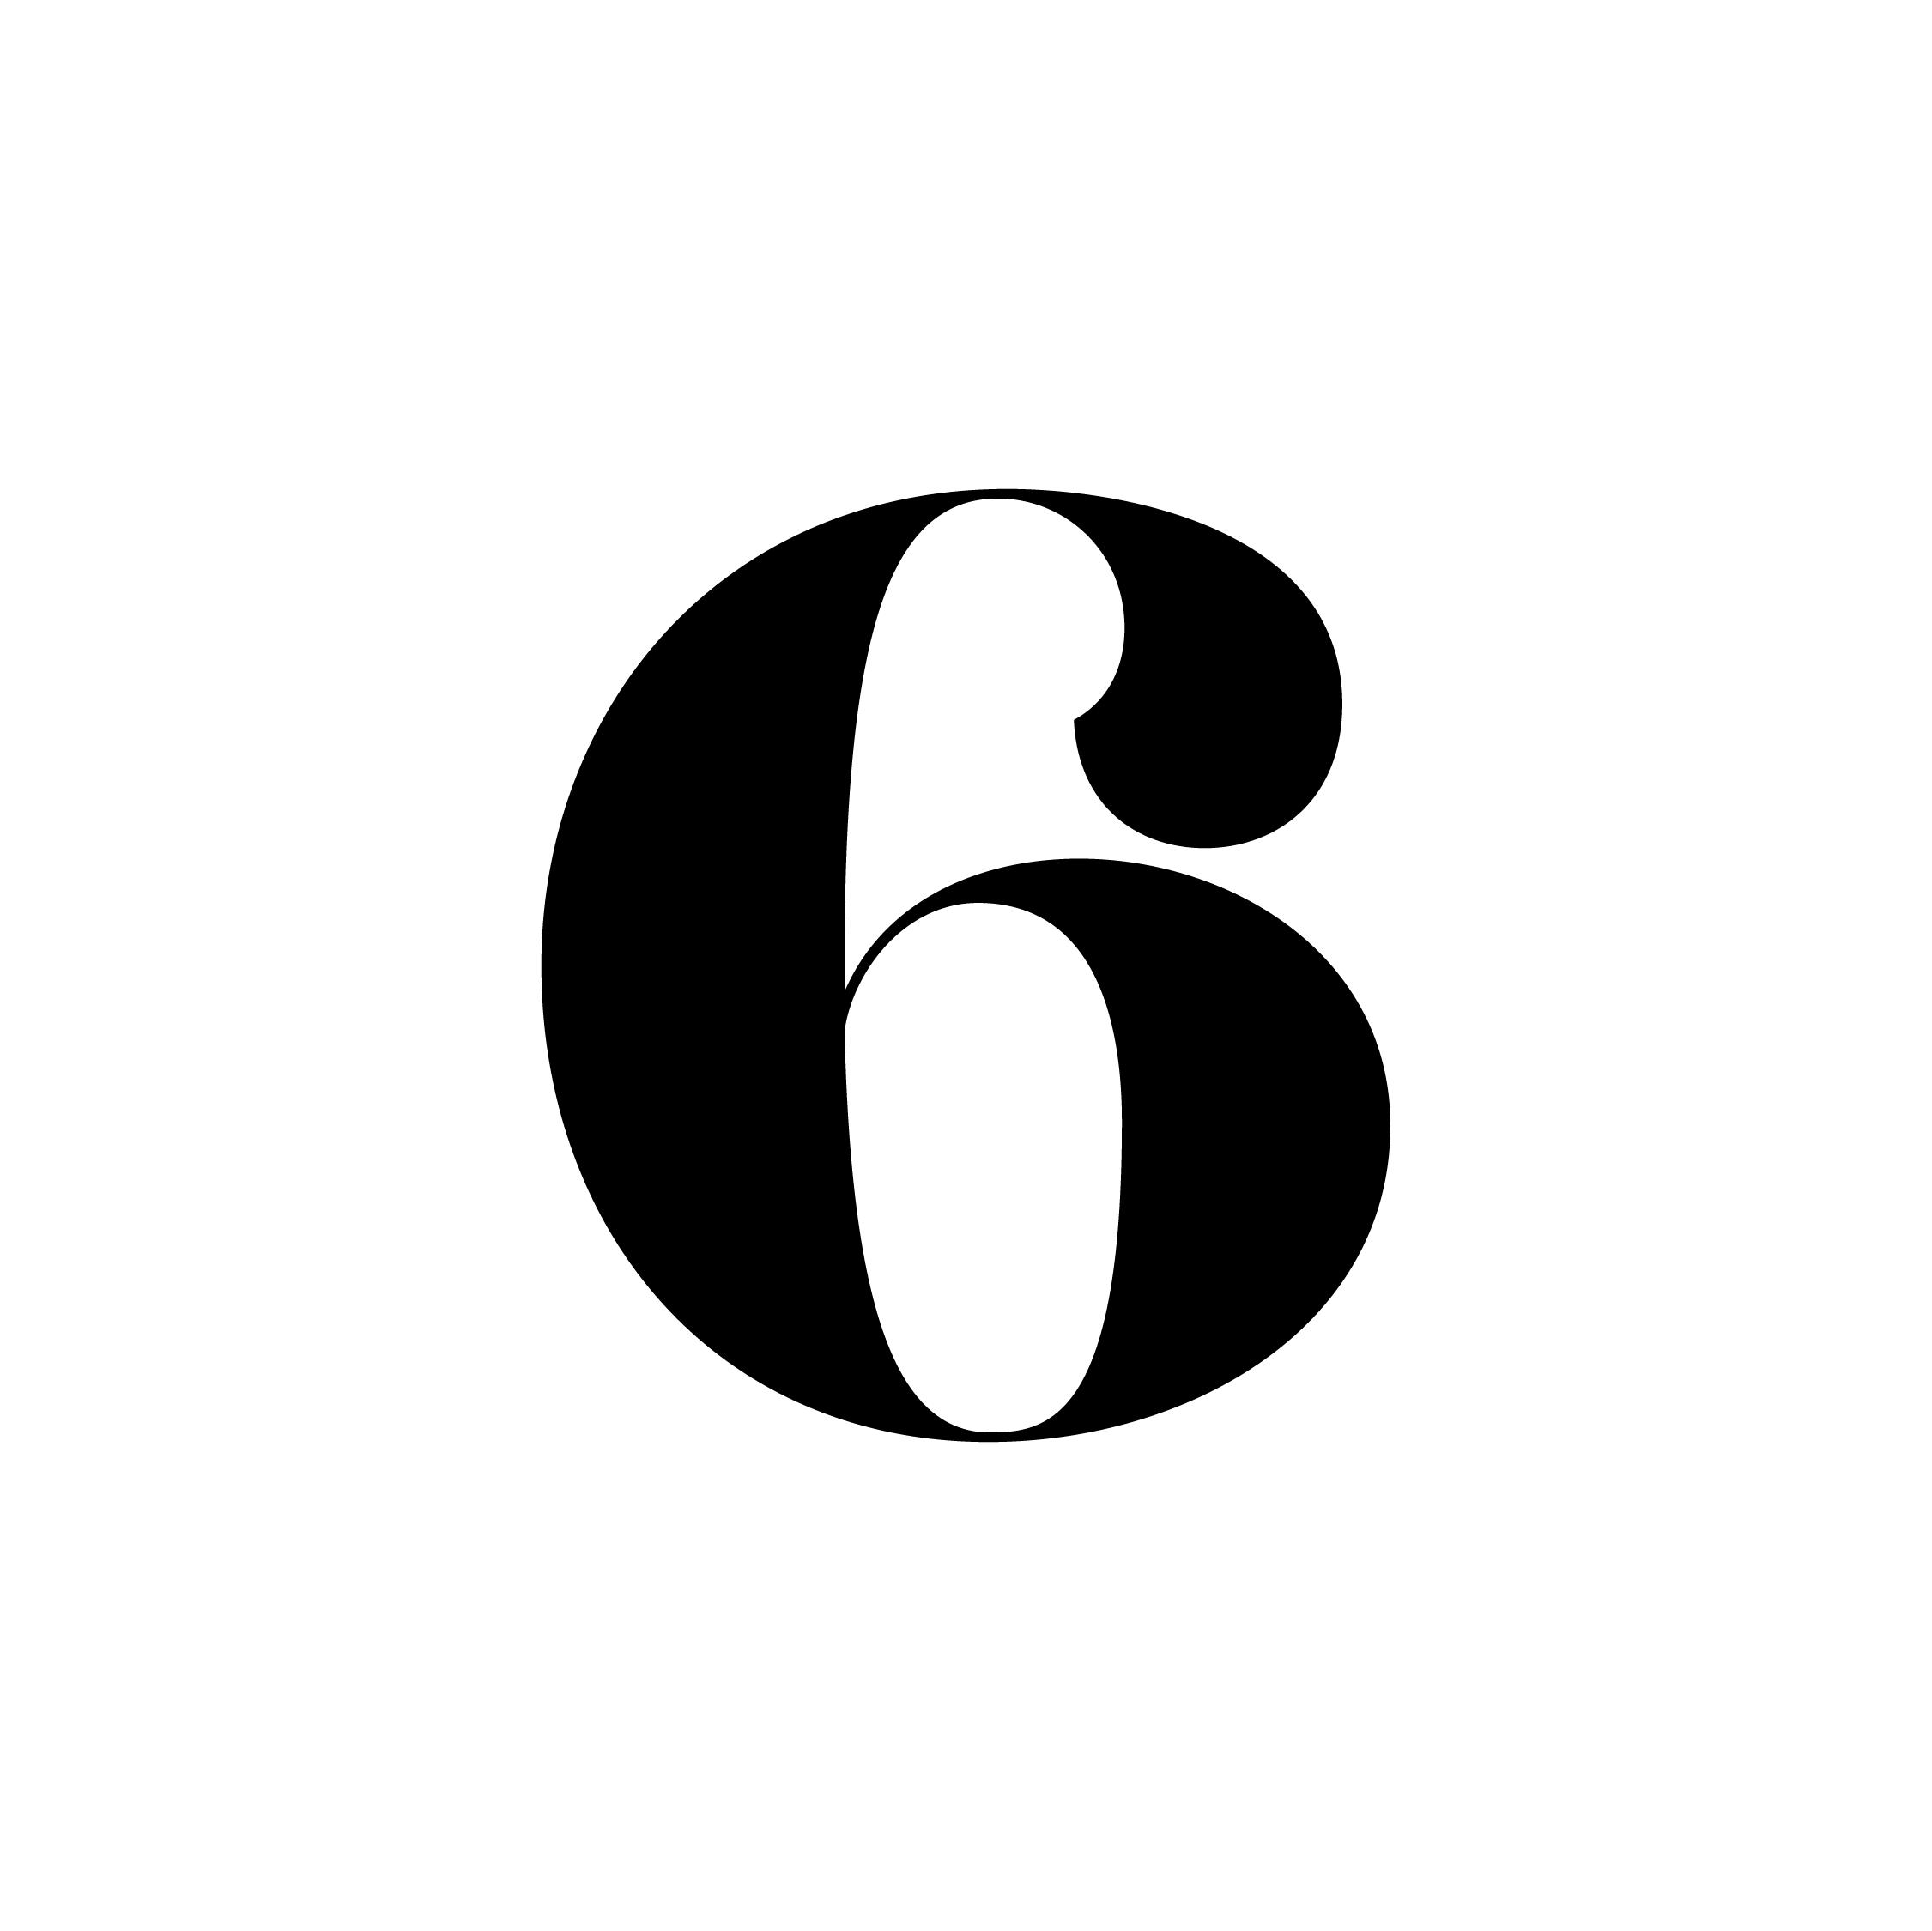 Numbers-06.png